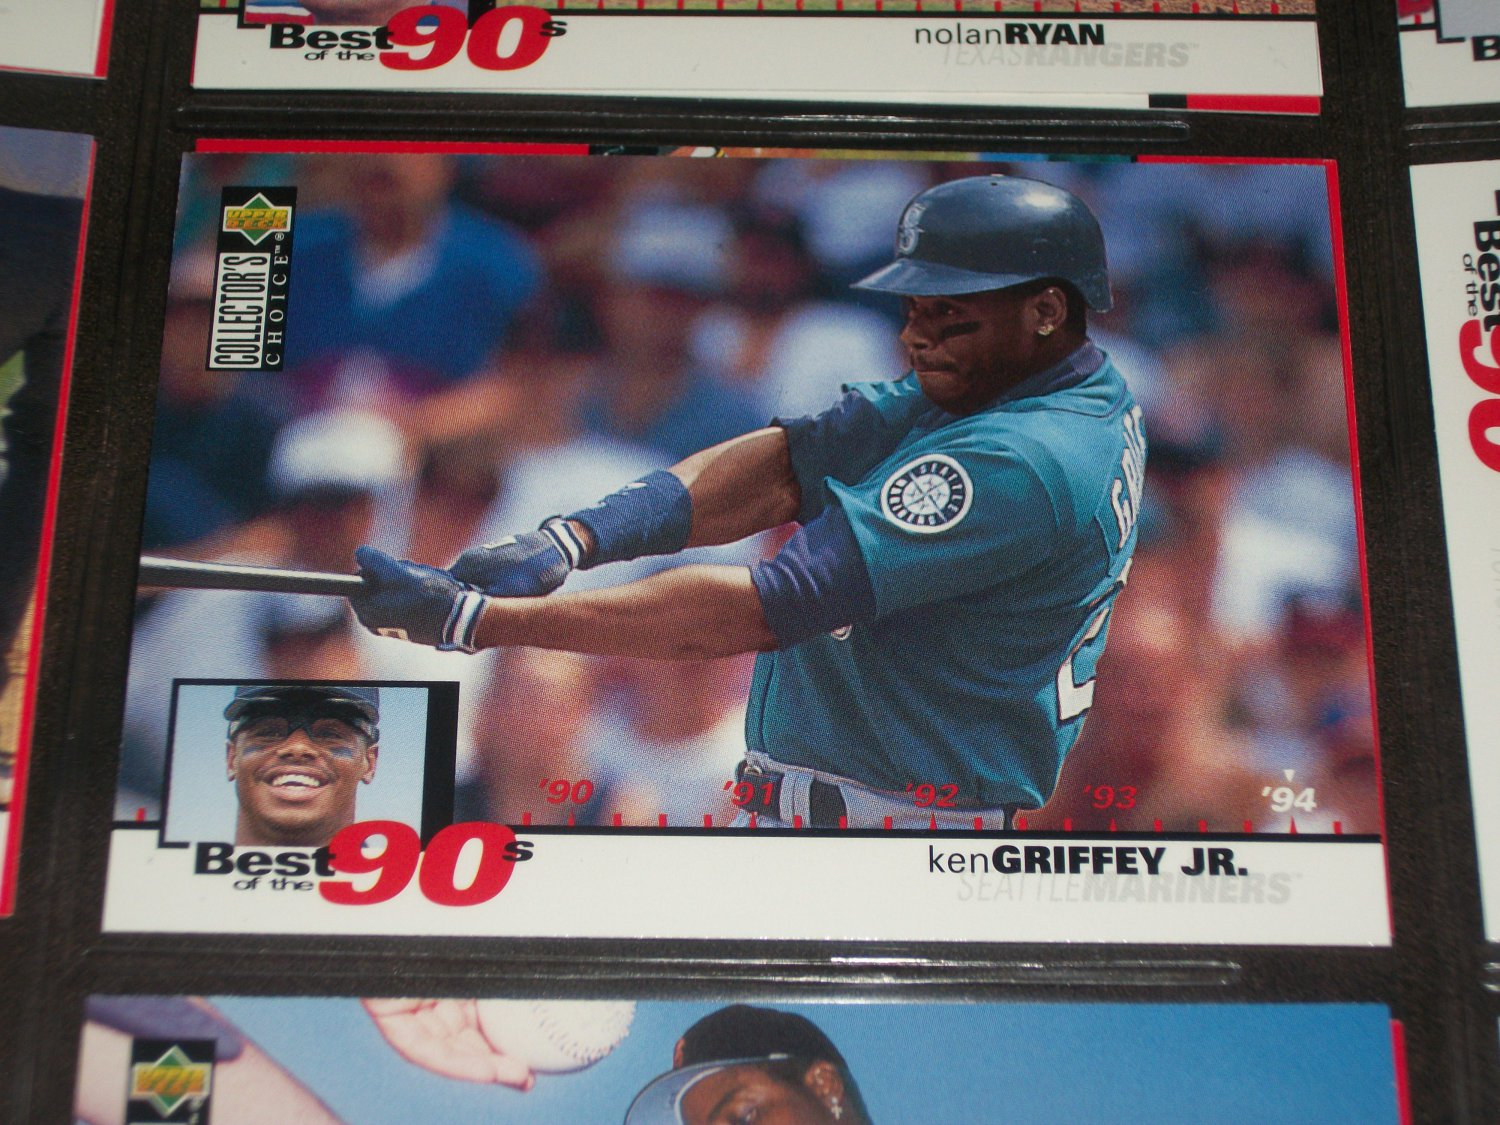 Ken Griffey jr 1994 upper deck-Best of the 90's card